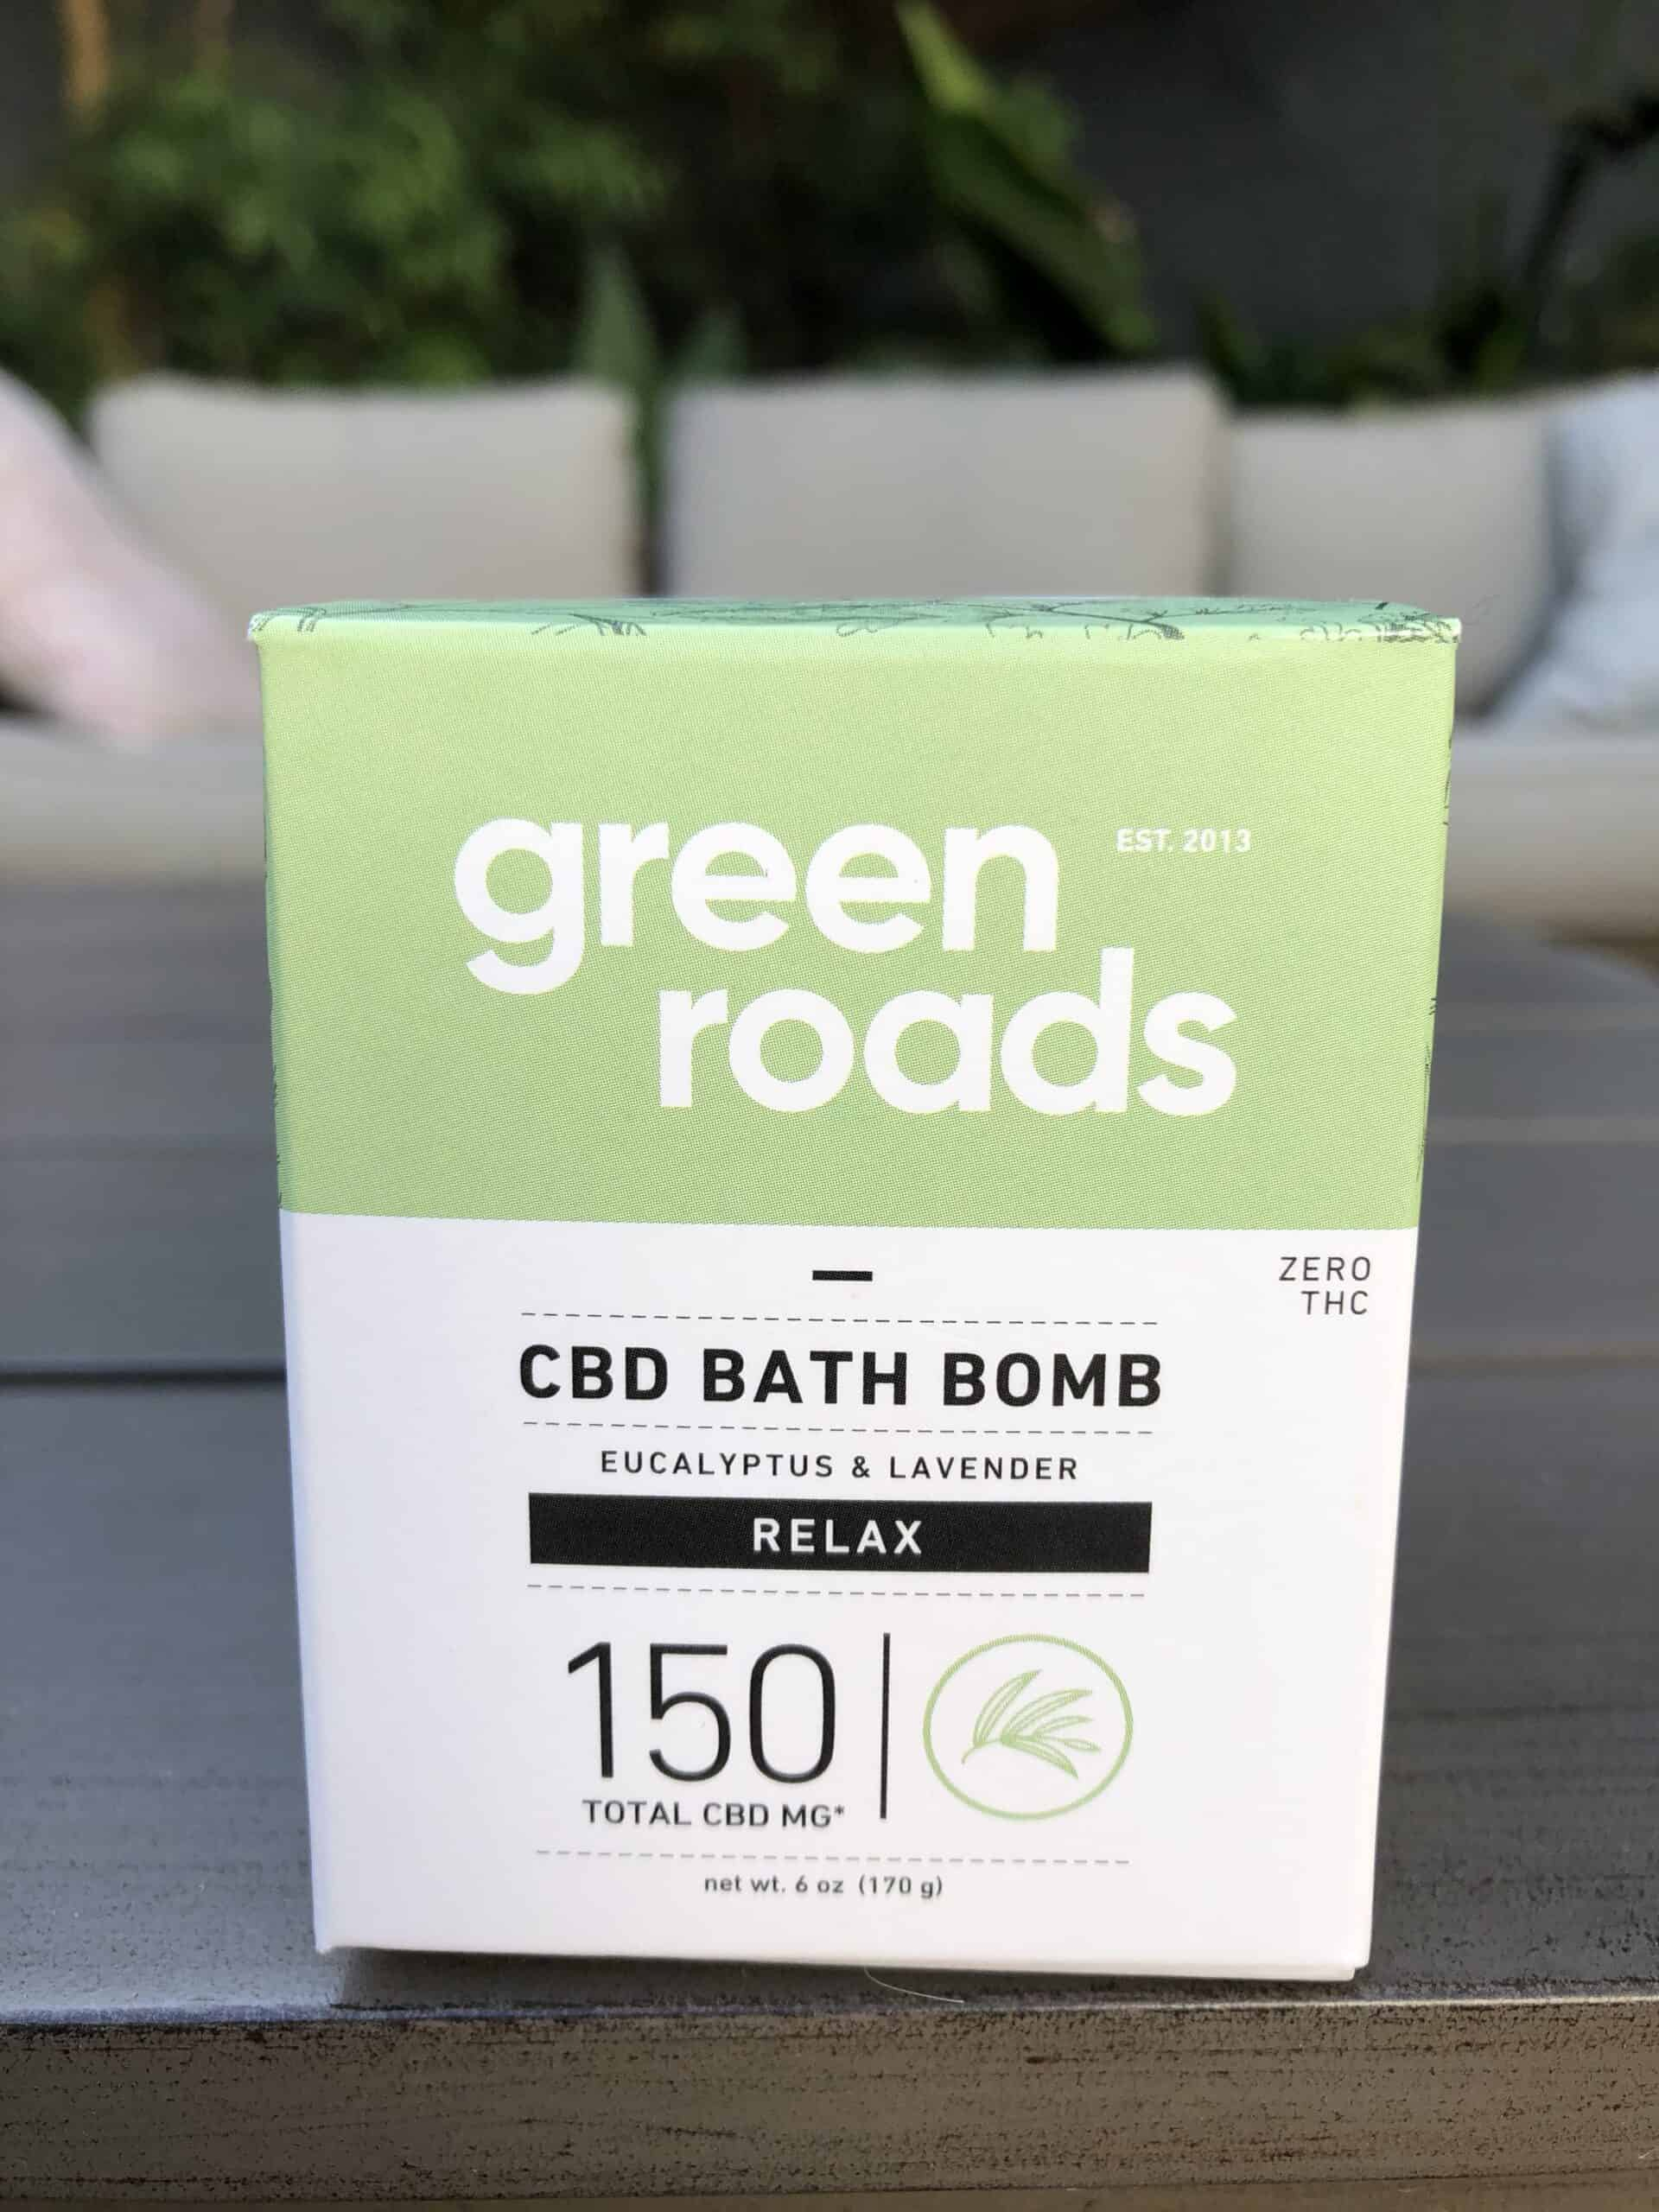 green roads 150 mg relax cbd bath bomb eucalyptus and lavender save on cannabis review